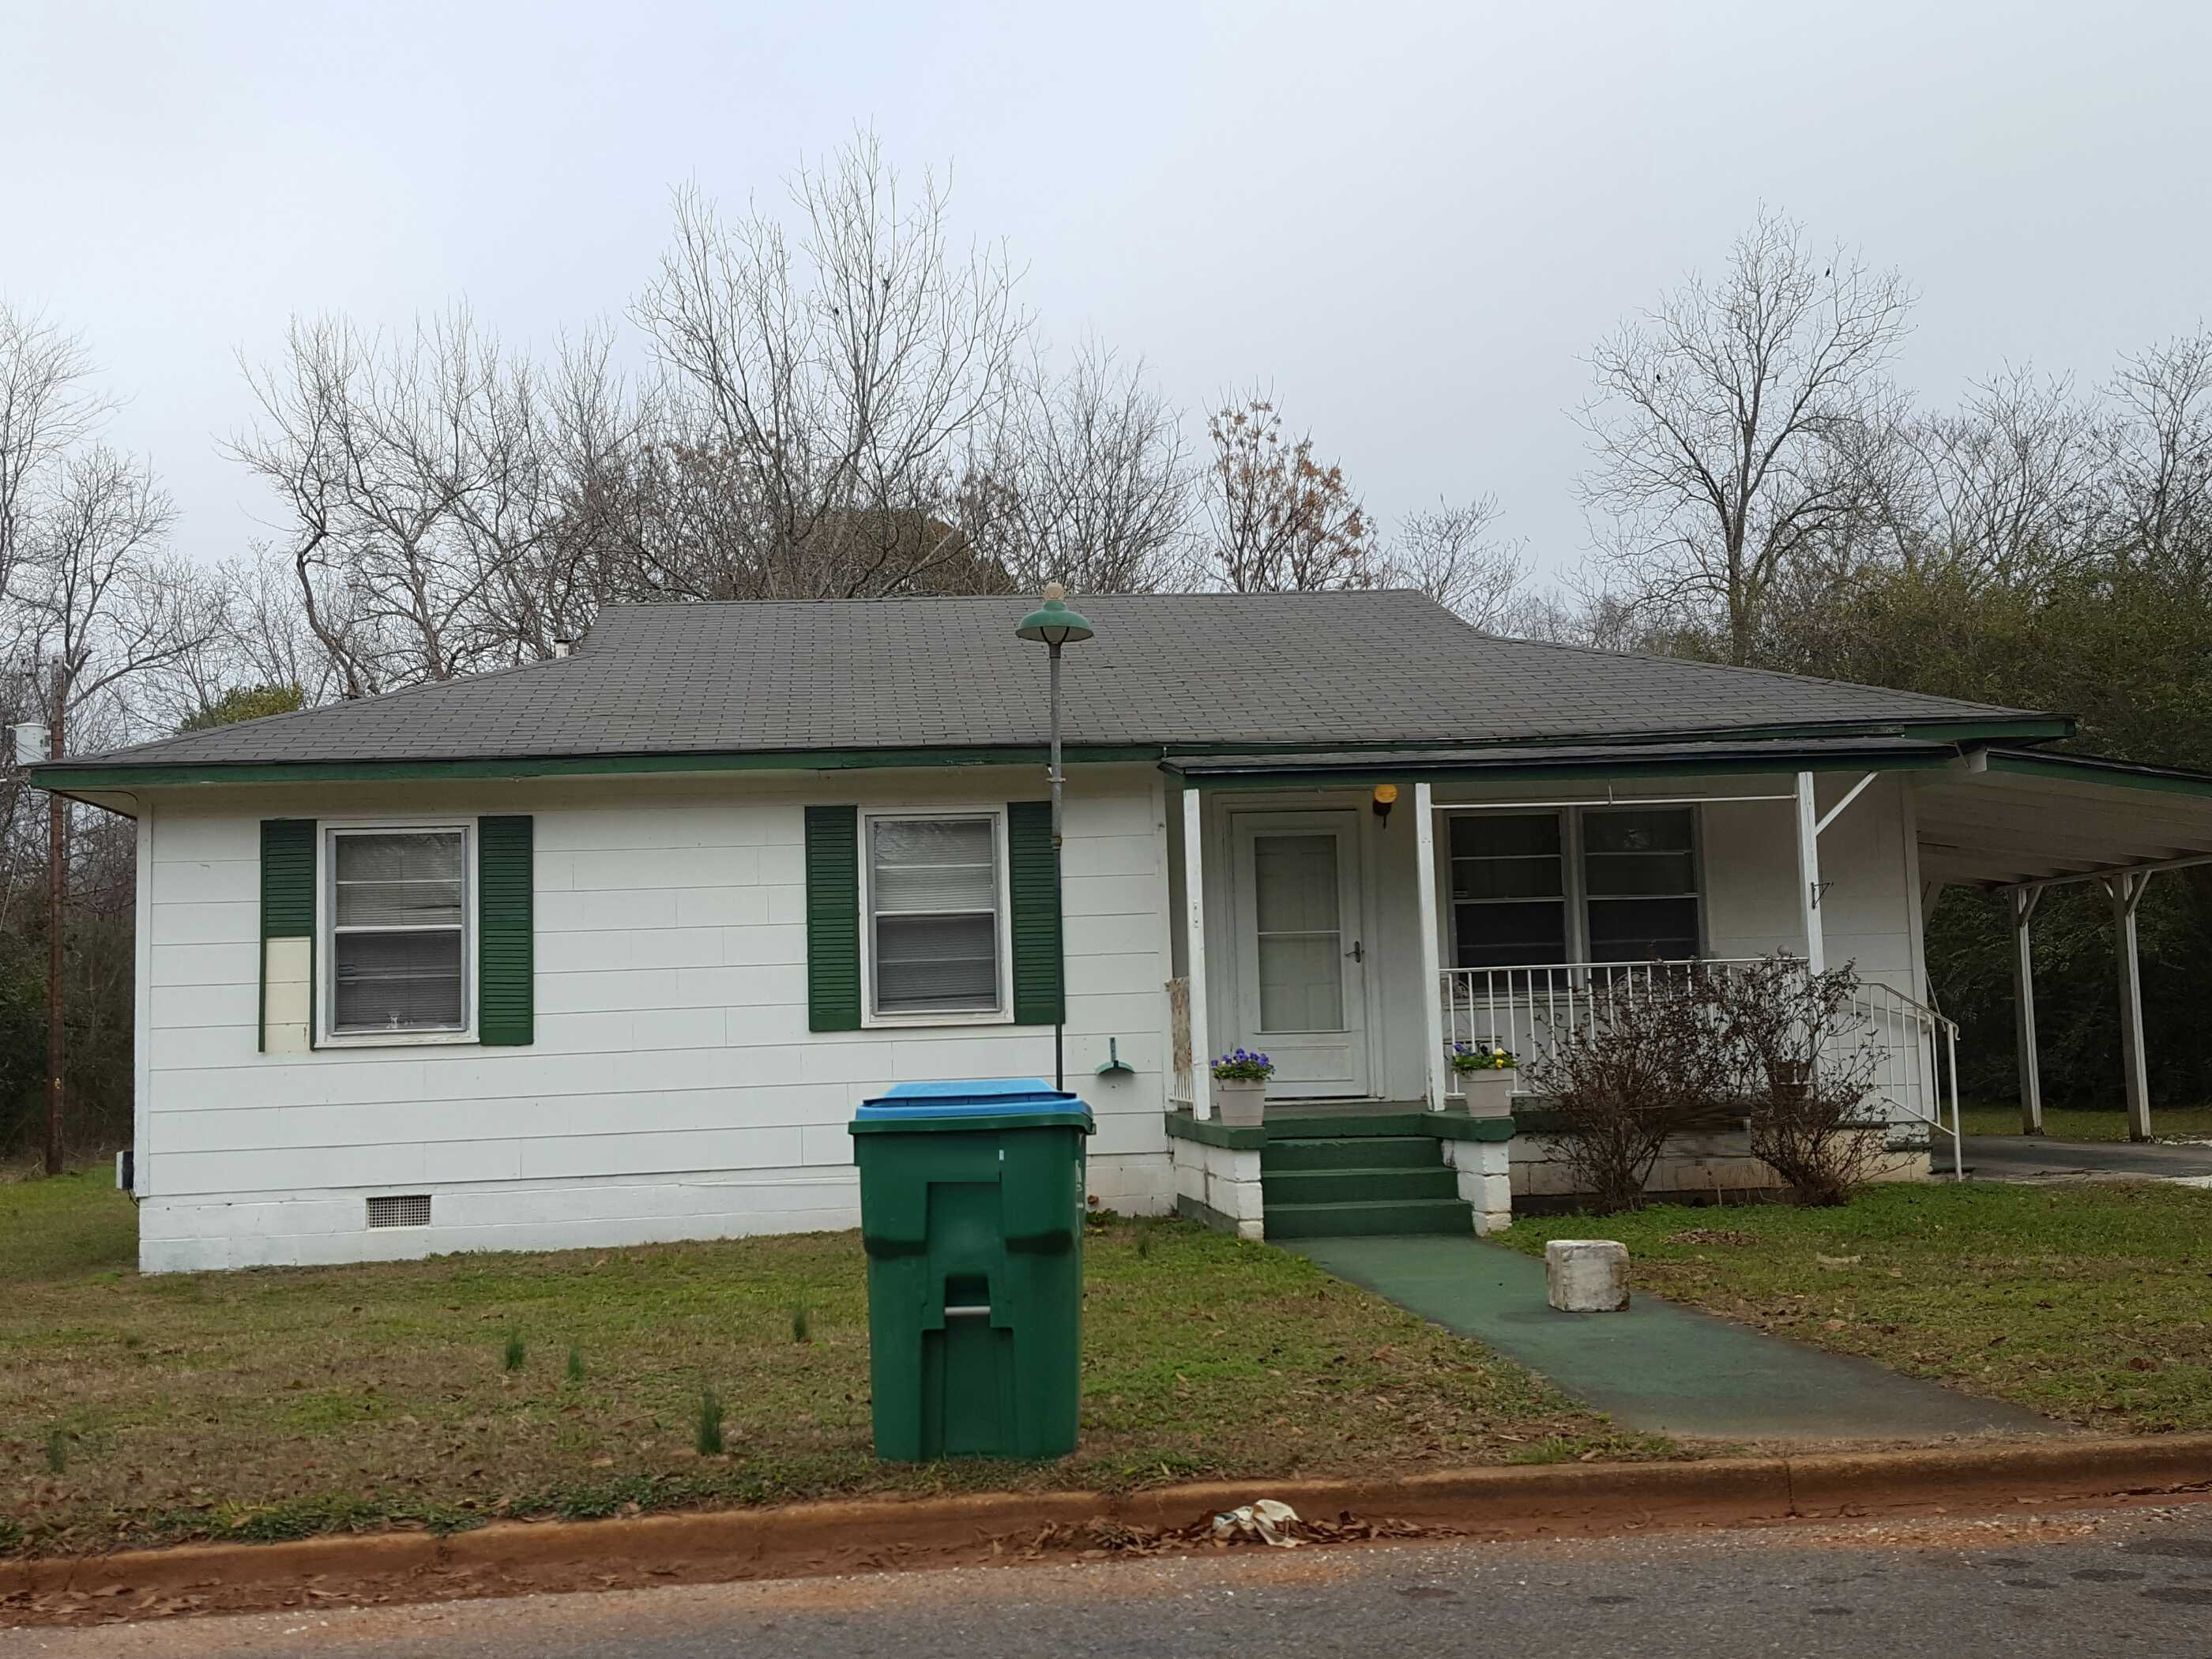 306 E 4th St, Sylacauga, AL 35150